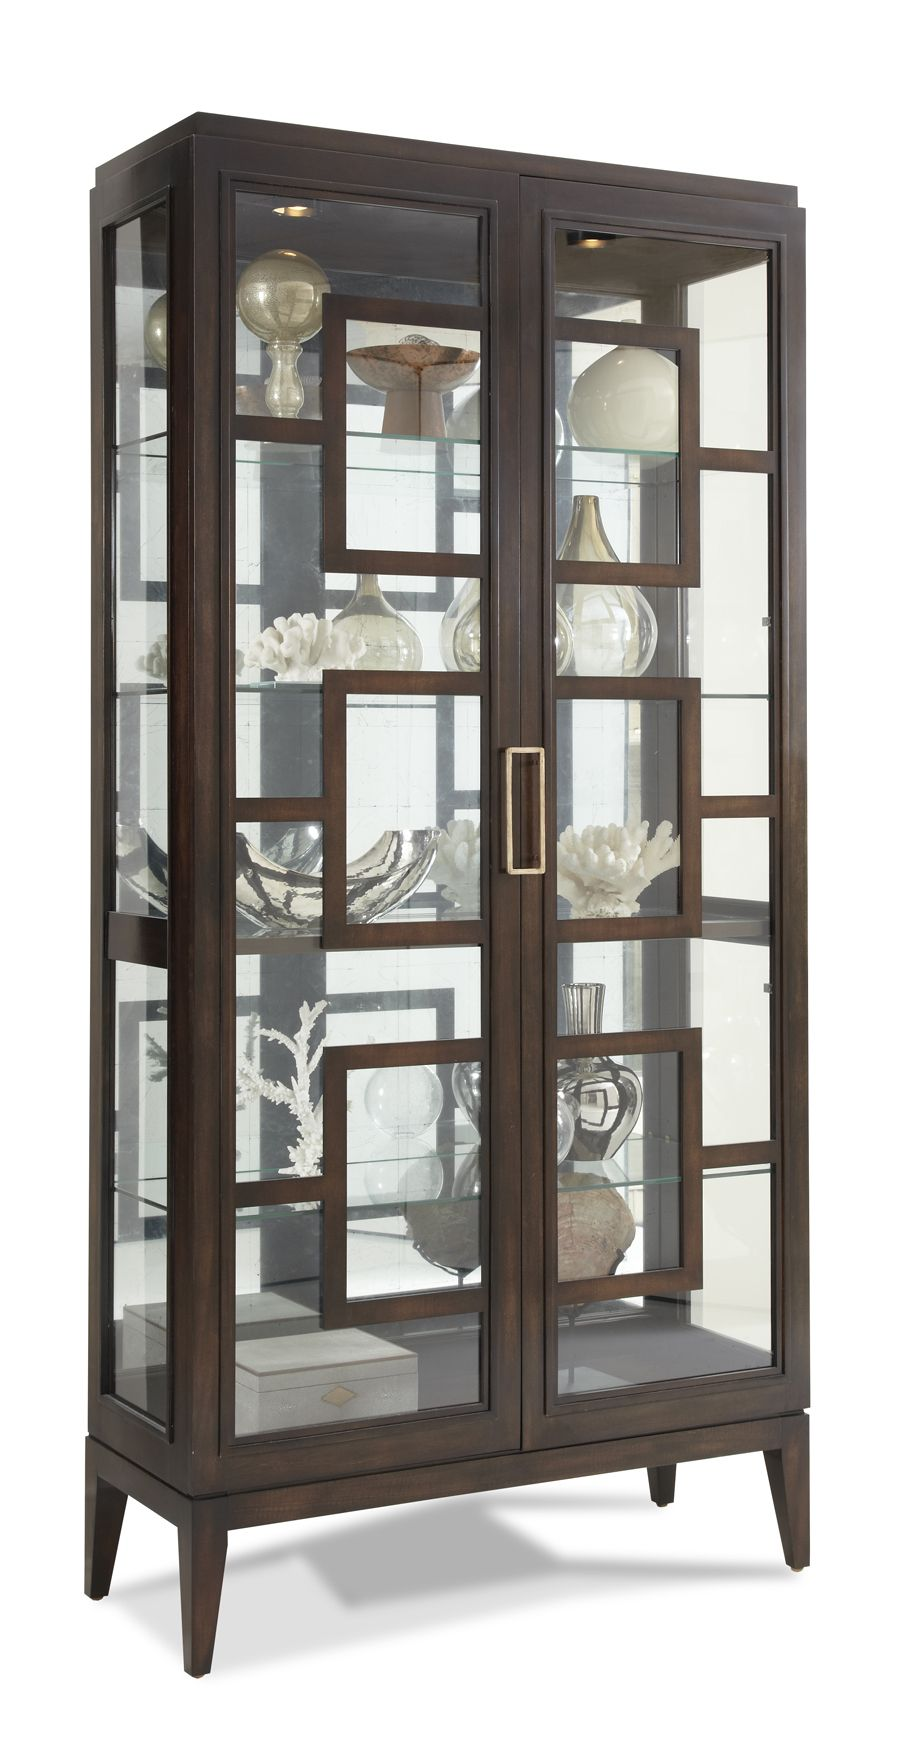 PIck Your Own Finish Hickory White   440 41 Rhodes Curio Cabinet